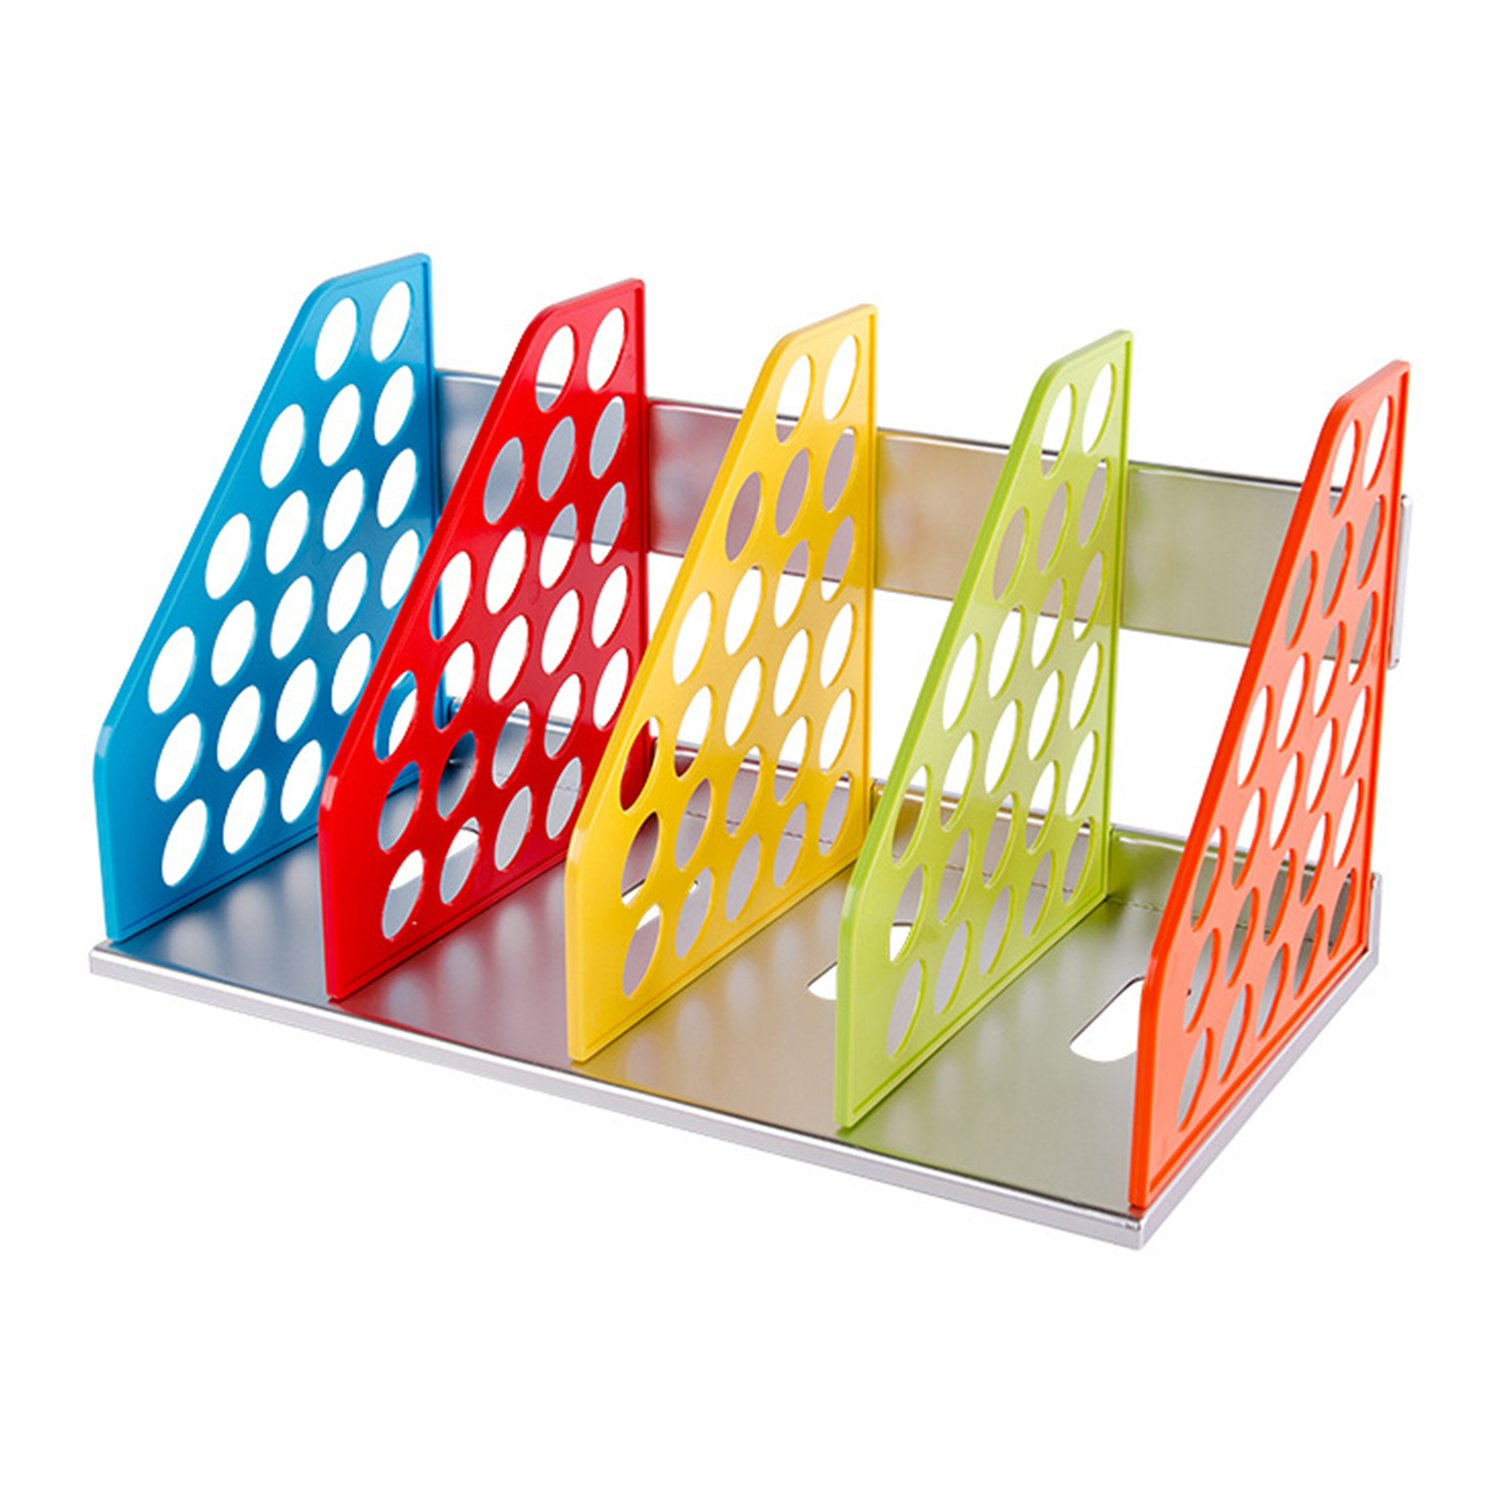 DIY Colorful Bookend Removable Bookstand Support Frame Desk Organizer Storage Plastic Book Shelf Rack Bin Heavy Duty Bookcase Nonskid Document File Holder for Office School Supplies Vertical Standard by Ylucky